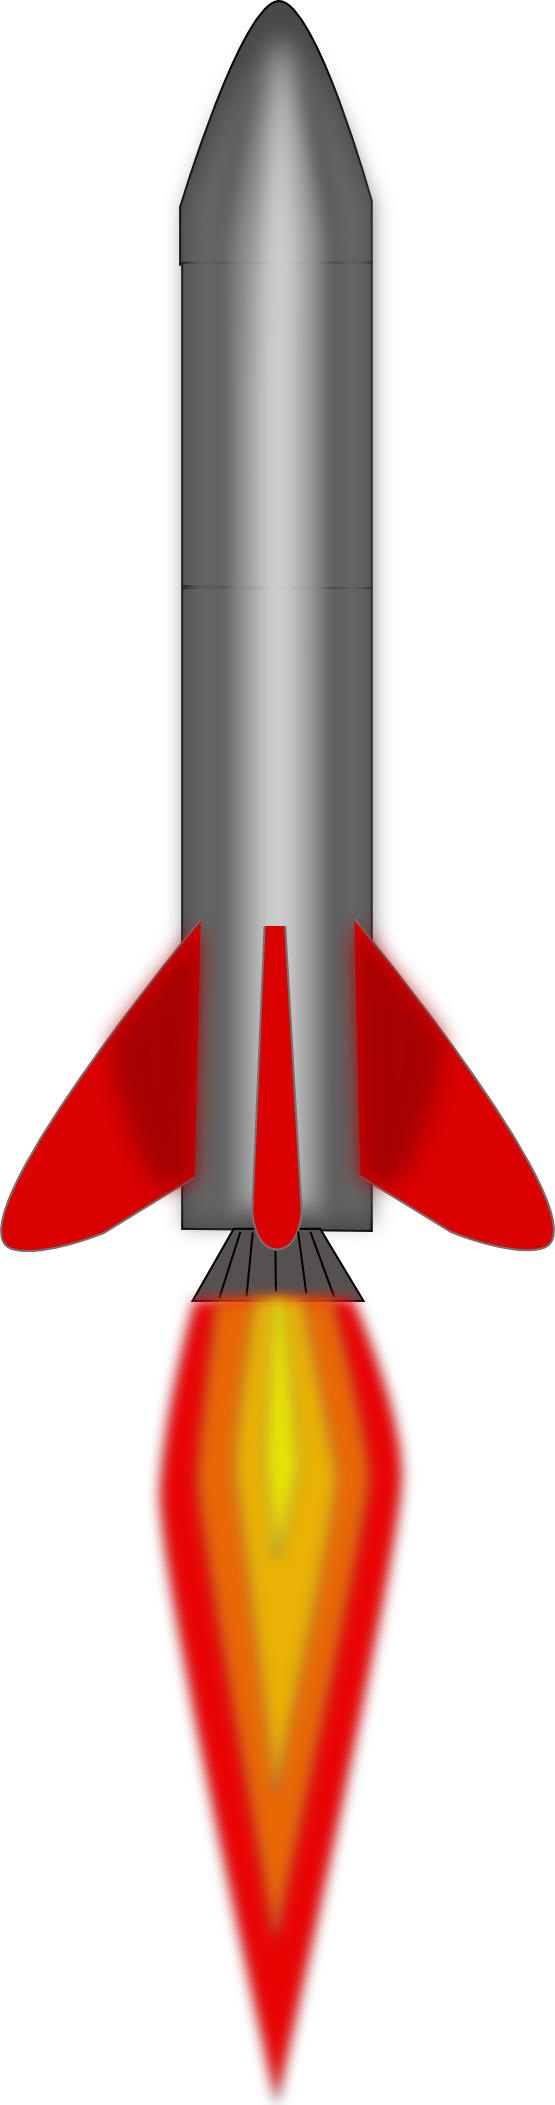 image stock Missiles at getdrawings com. Missile drawing.